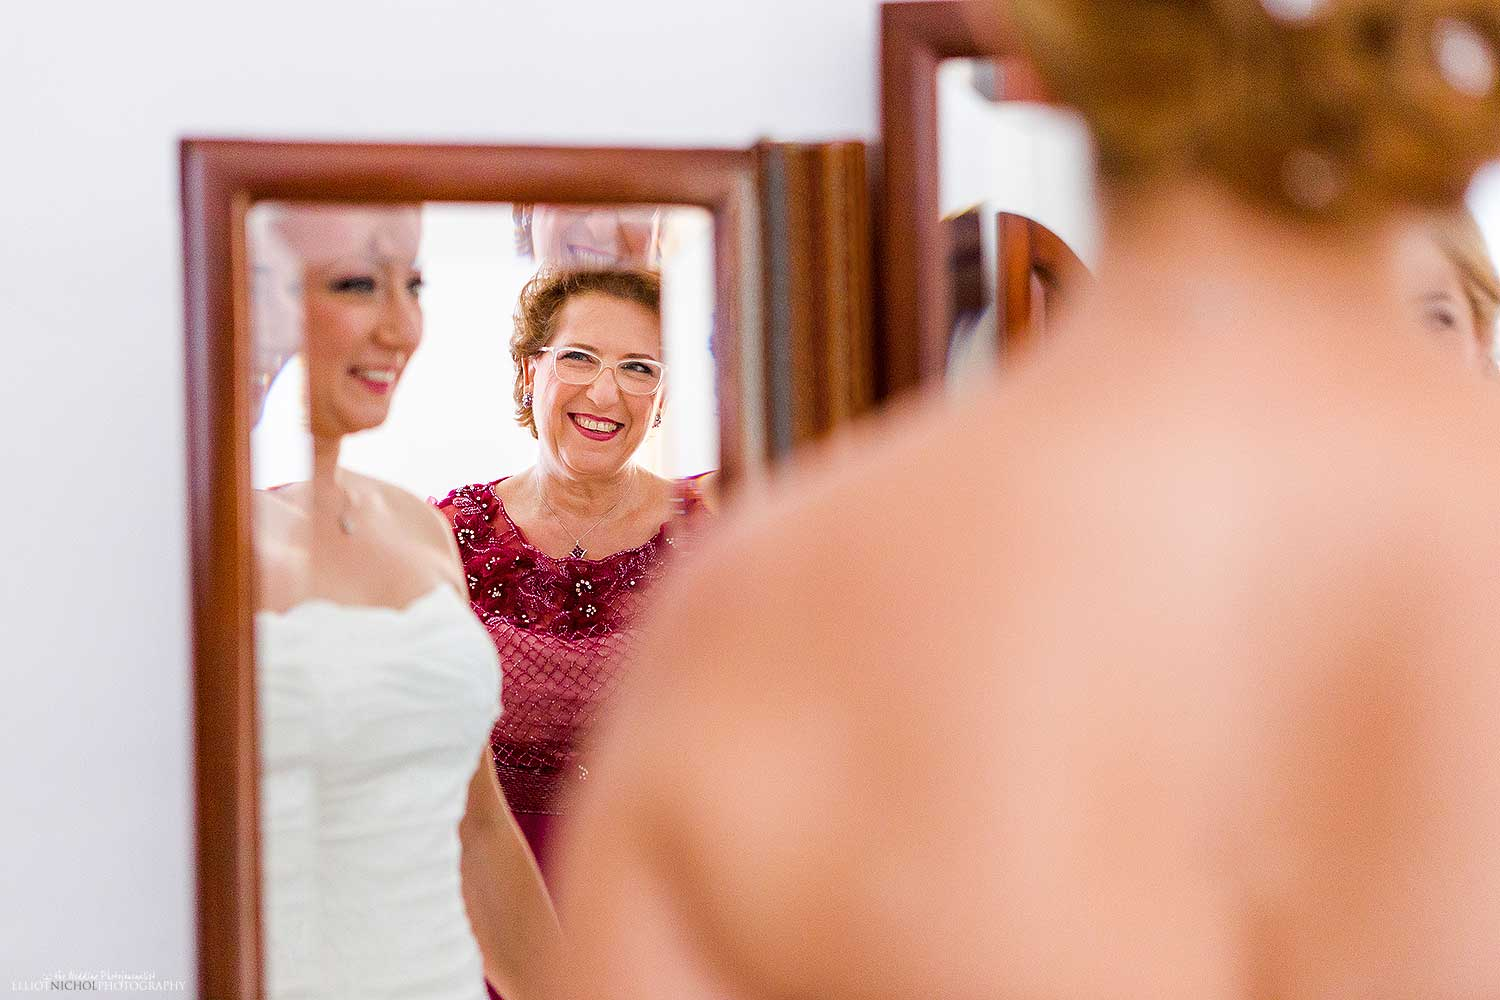 mother-bride-getting-ready-wedding-day-photo